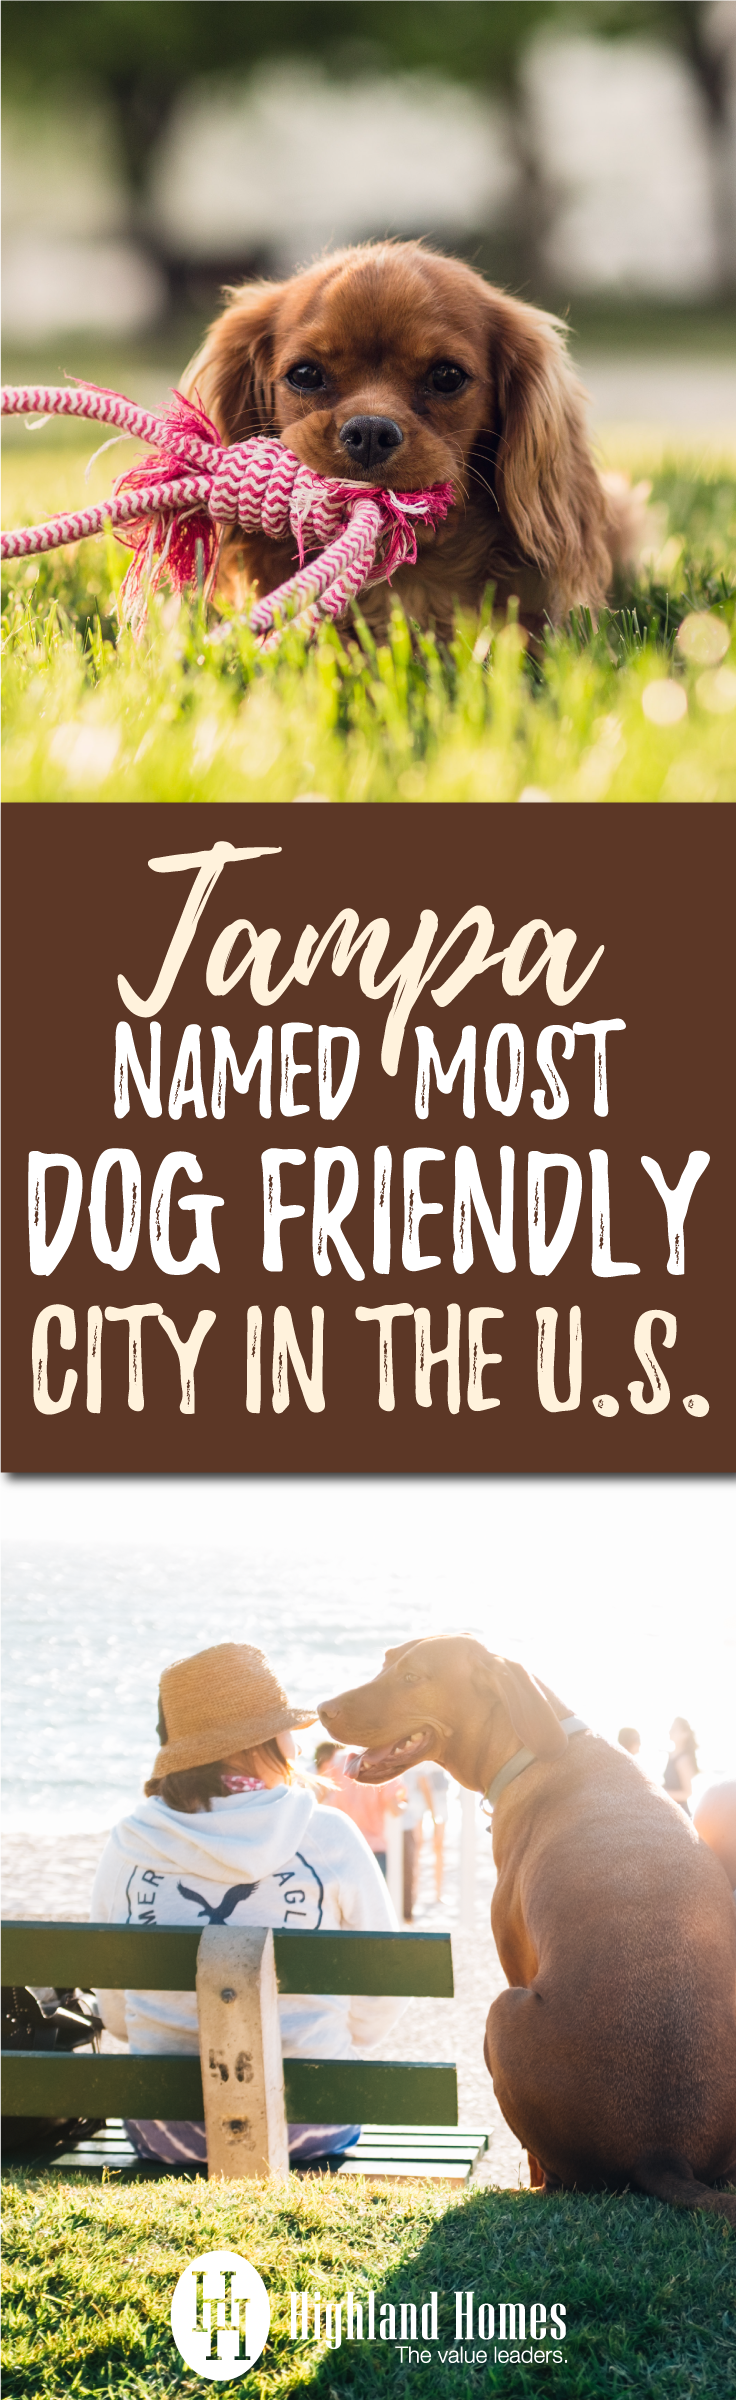 Did you know Tampa has so many dog-loving residents? Here are some ways you can have fun with Fido in the canine capital of the nation!